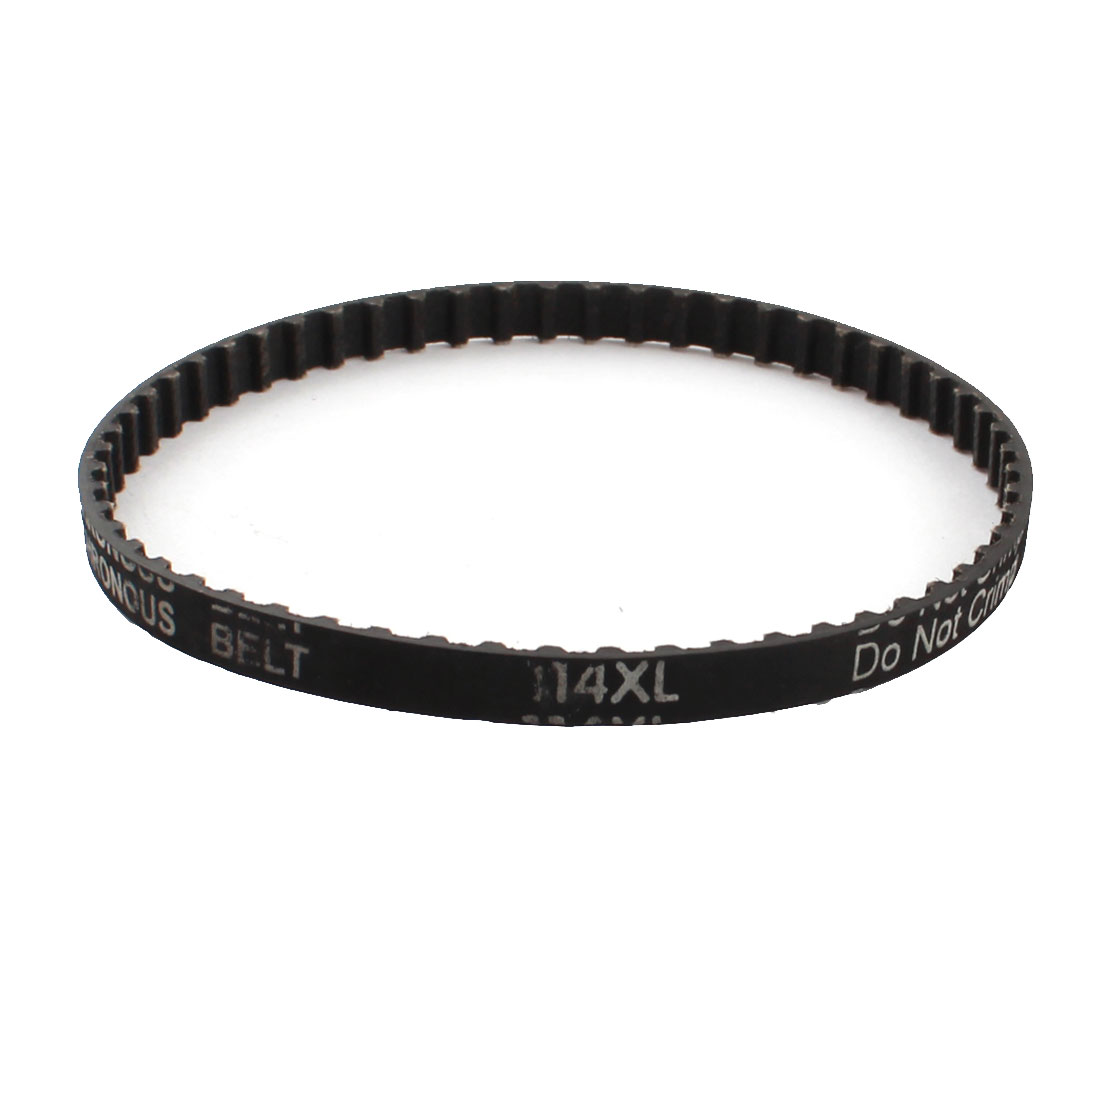 "XL-114 11.4"" Girth 5.08mm Pitch 57-Teeth 025 6.4mm Width Black Rubber Single Side Synchronous Timing Belt"